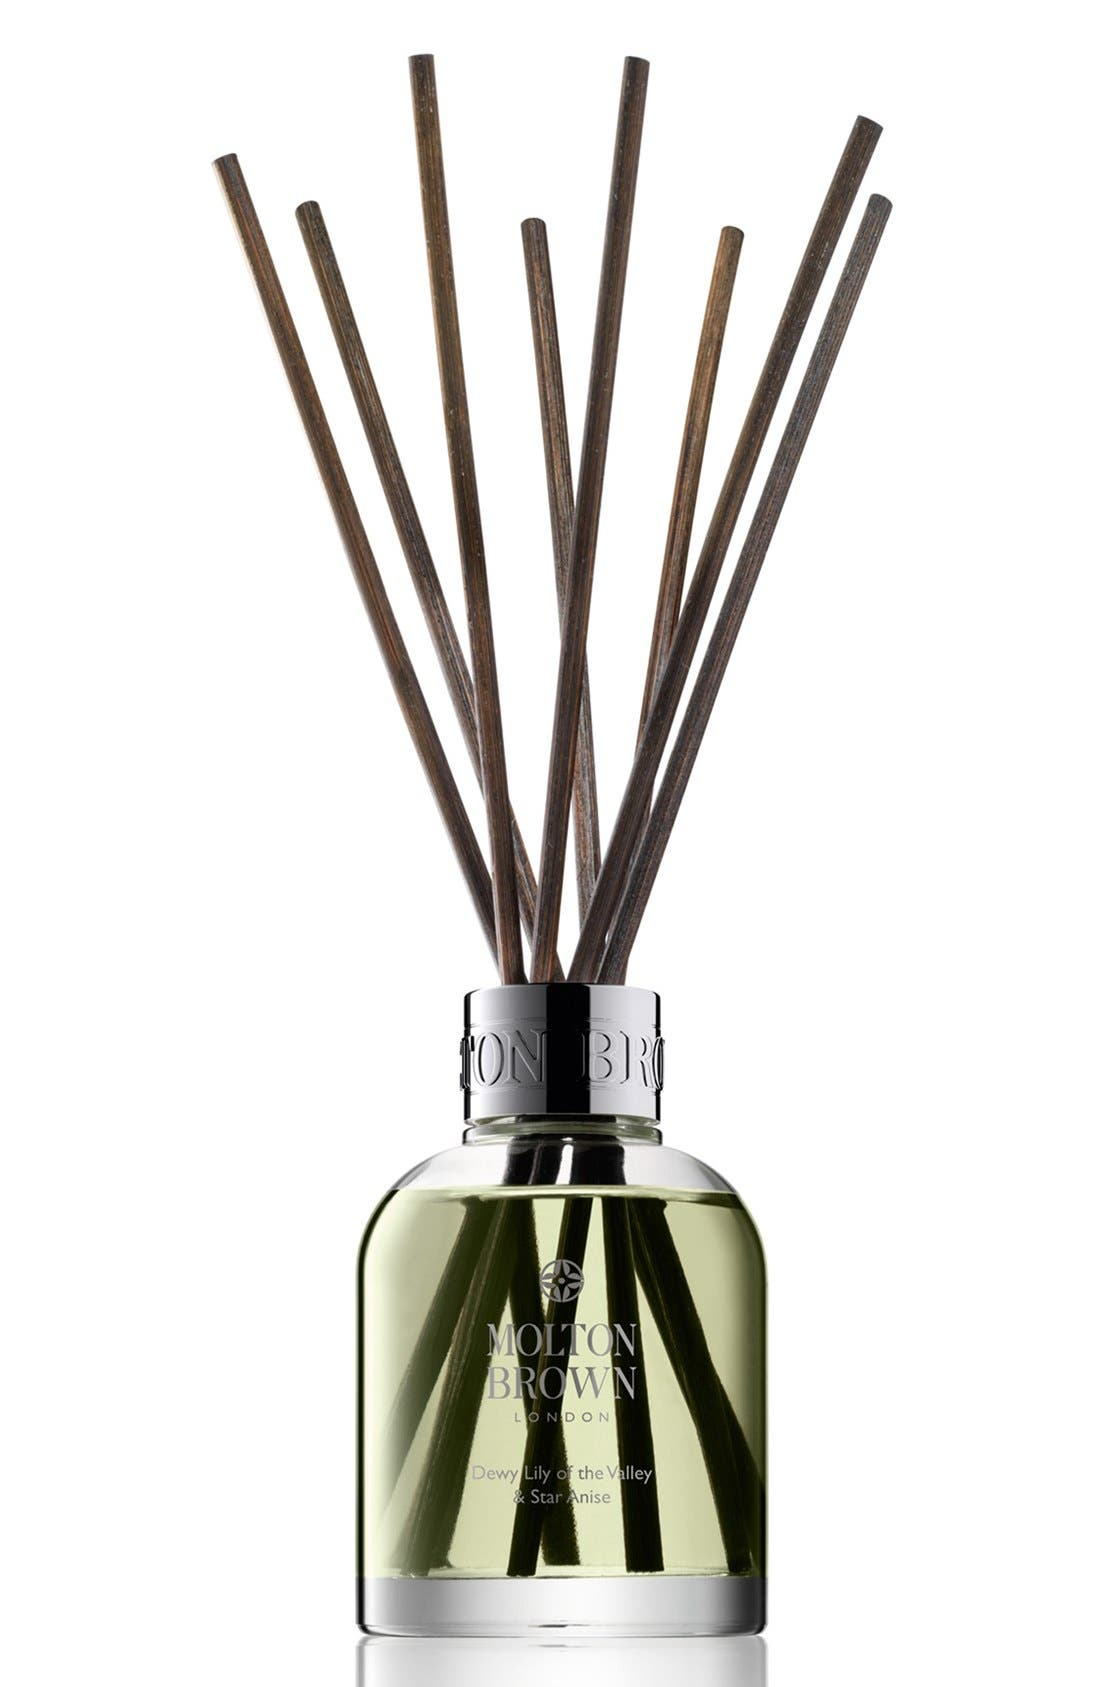 Alternate Image 1 Selected - MOLTON BROWN London 'Dewy Lily of the Valley & Star Anise' Aroma Reeds